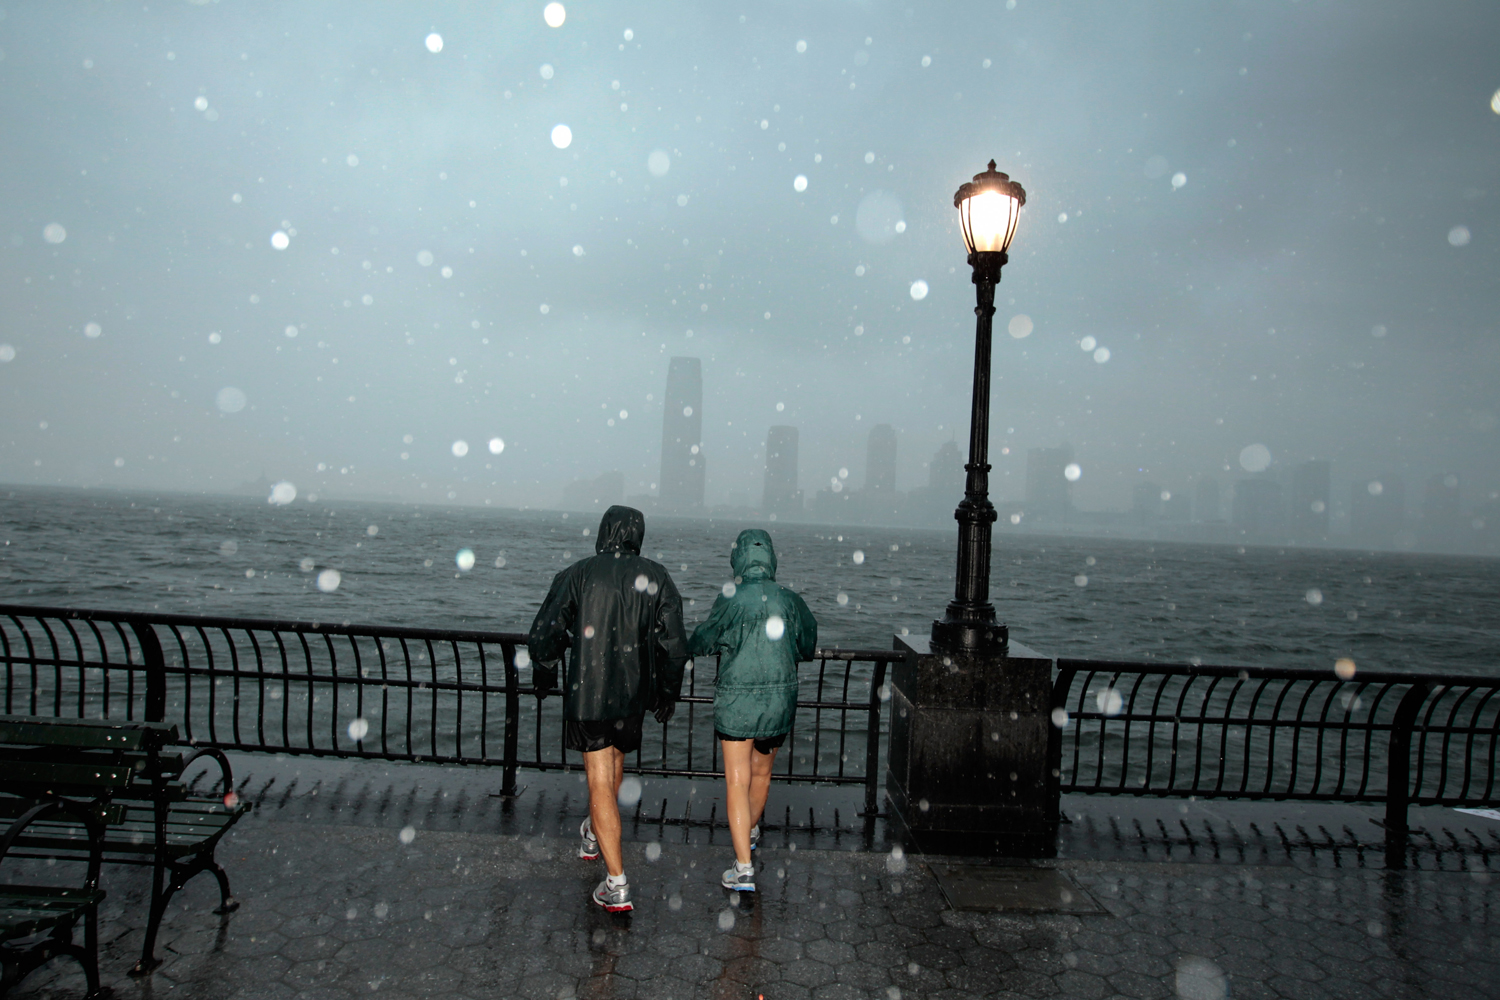 August 28, 2011, New York, NY. SoHo residents Amy Eagle, right, and Rich Thompson take an early morning walk just before high tide along the World Financial Center Esplanade as the effects of Hurricane Irene are still felt in Manhattan.